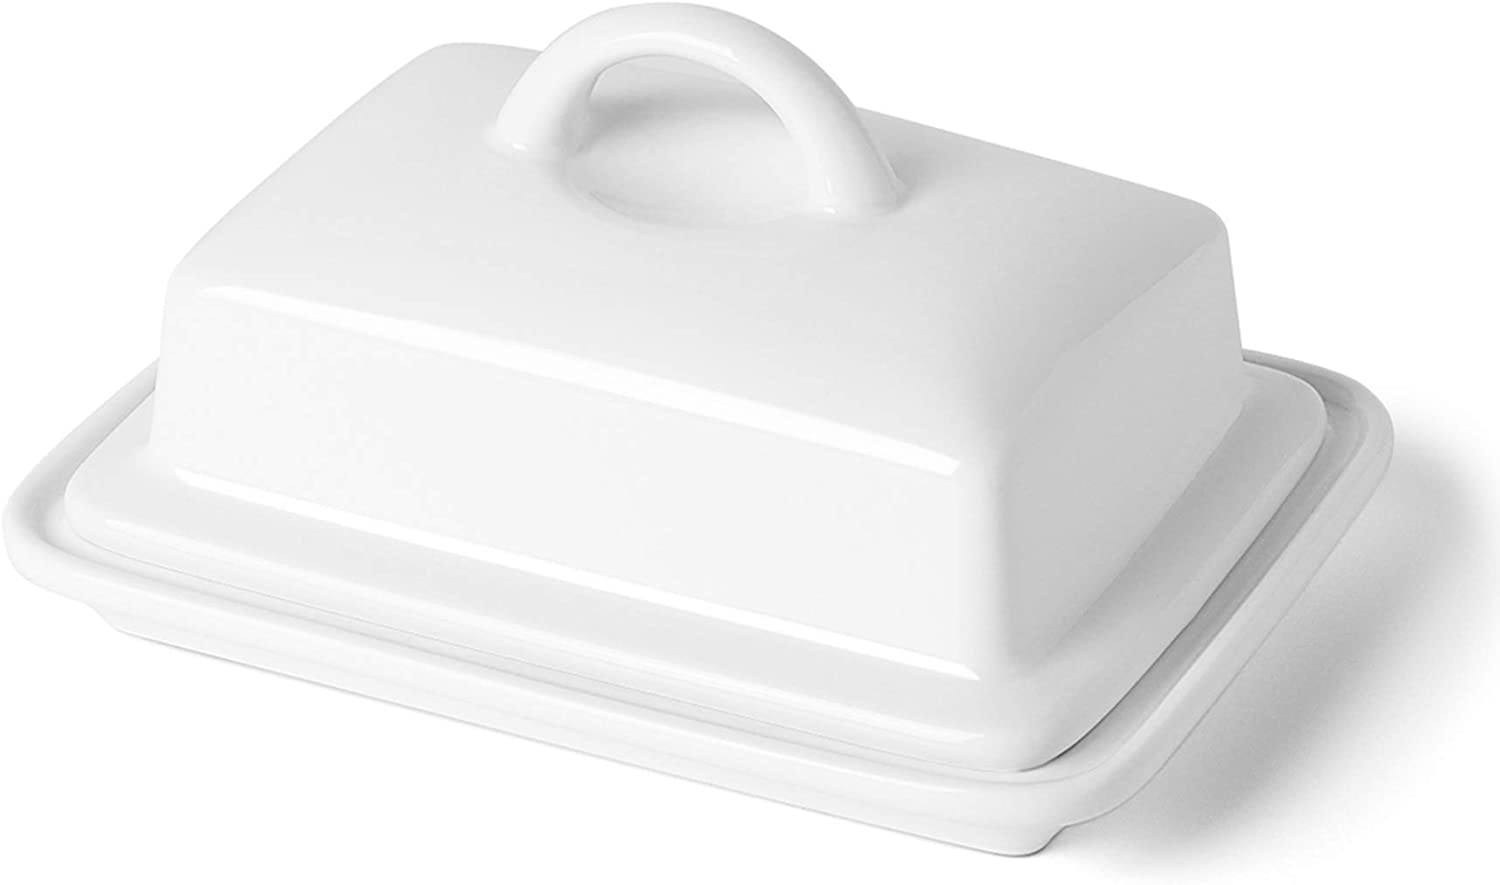 Porcelain Butter Dish with Lid - Large Enough for 8oz European Butter and 2 Sticks of East/West Coast Butter, White - Better Butter & Beyond